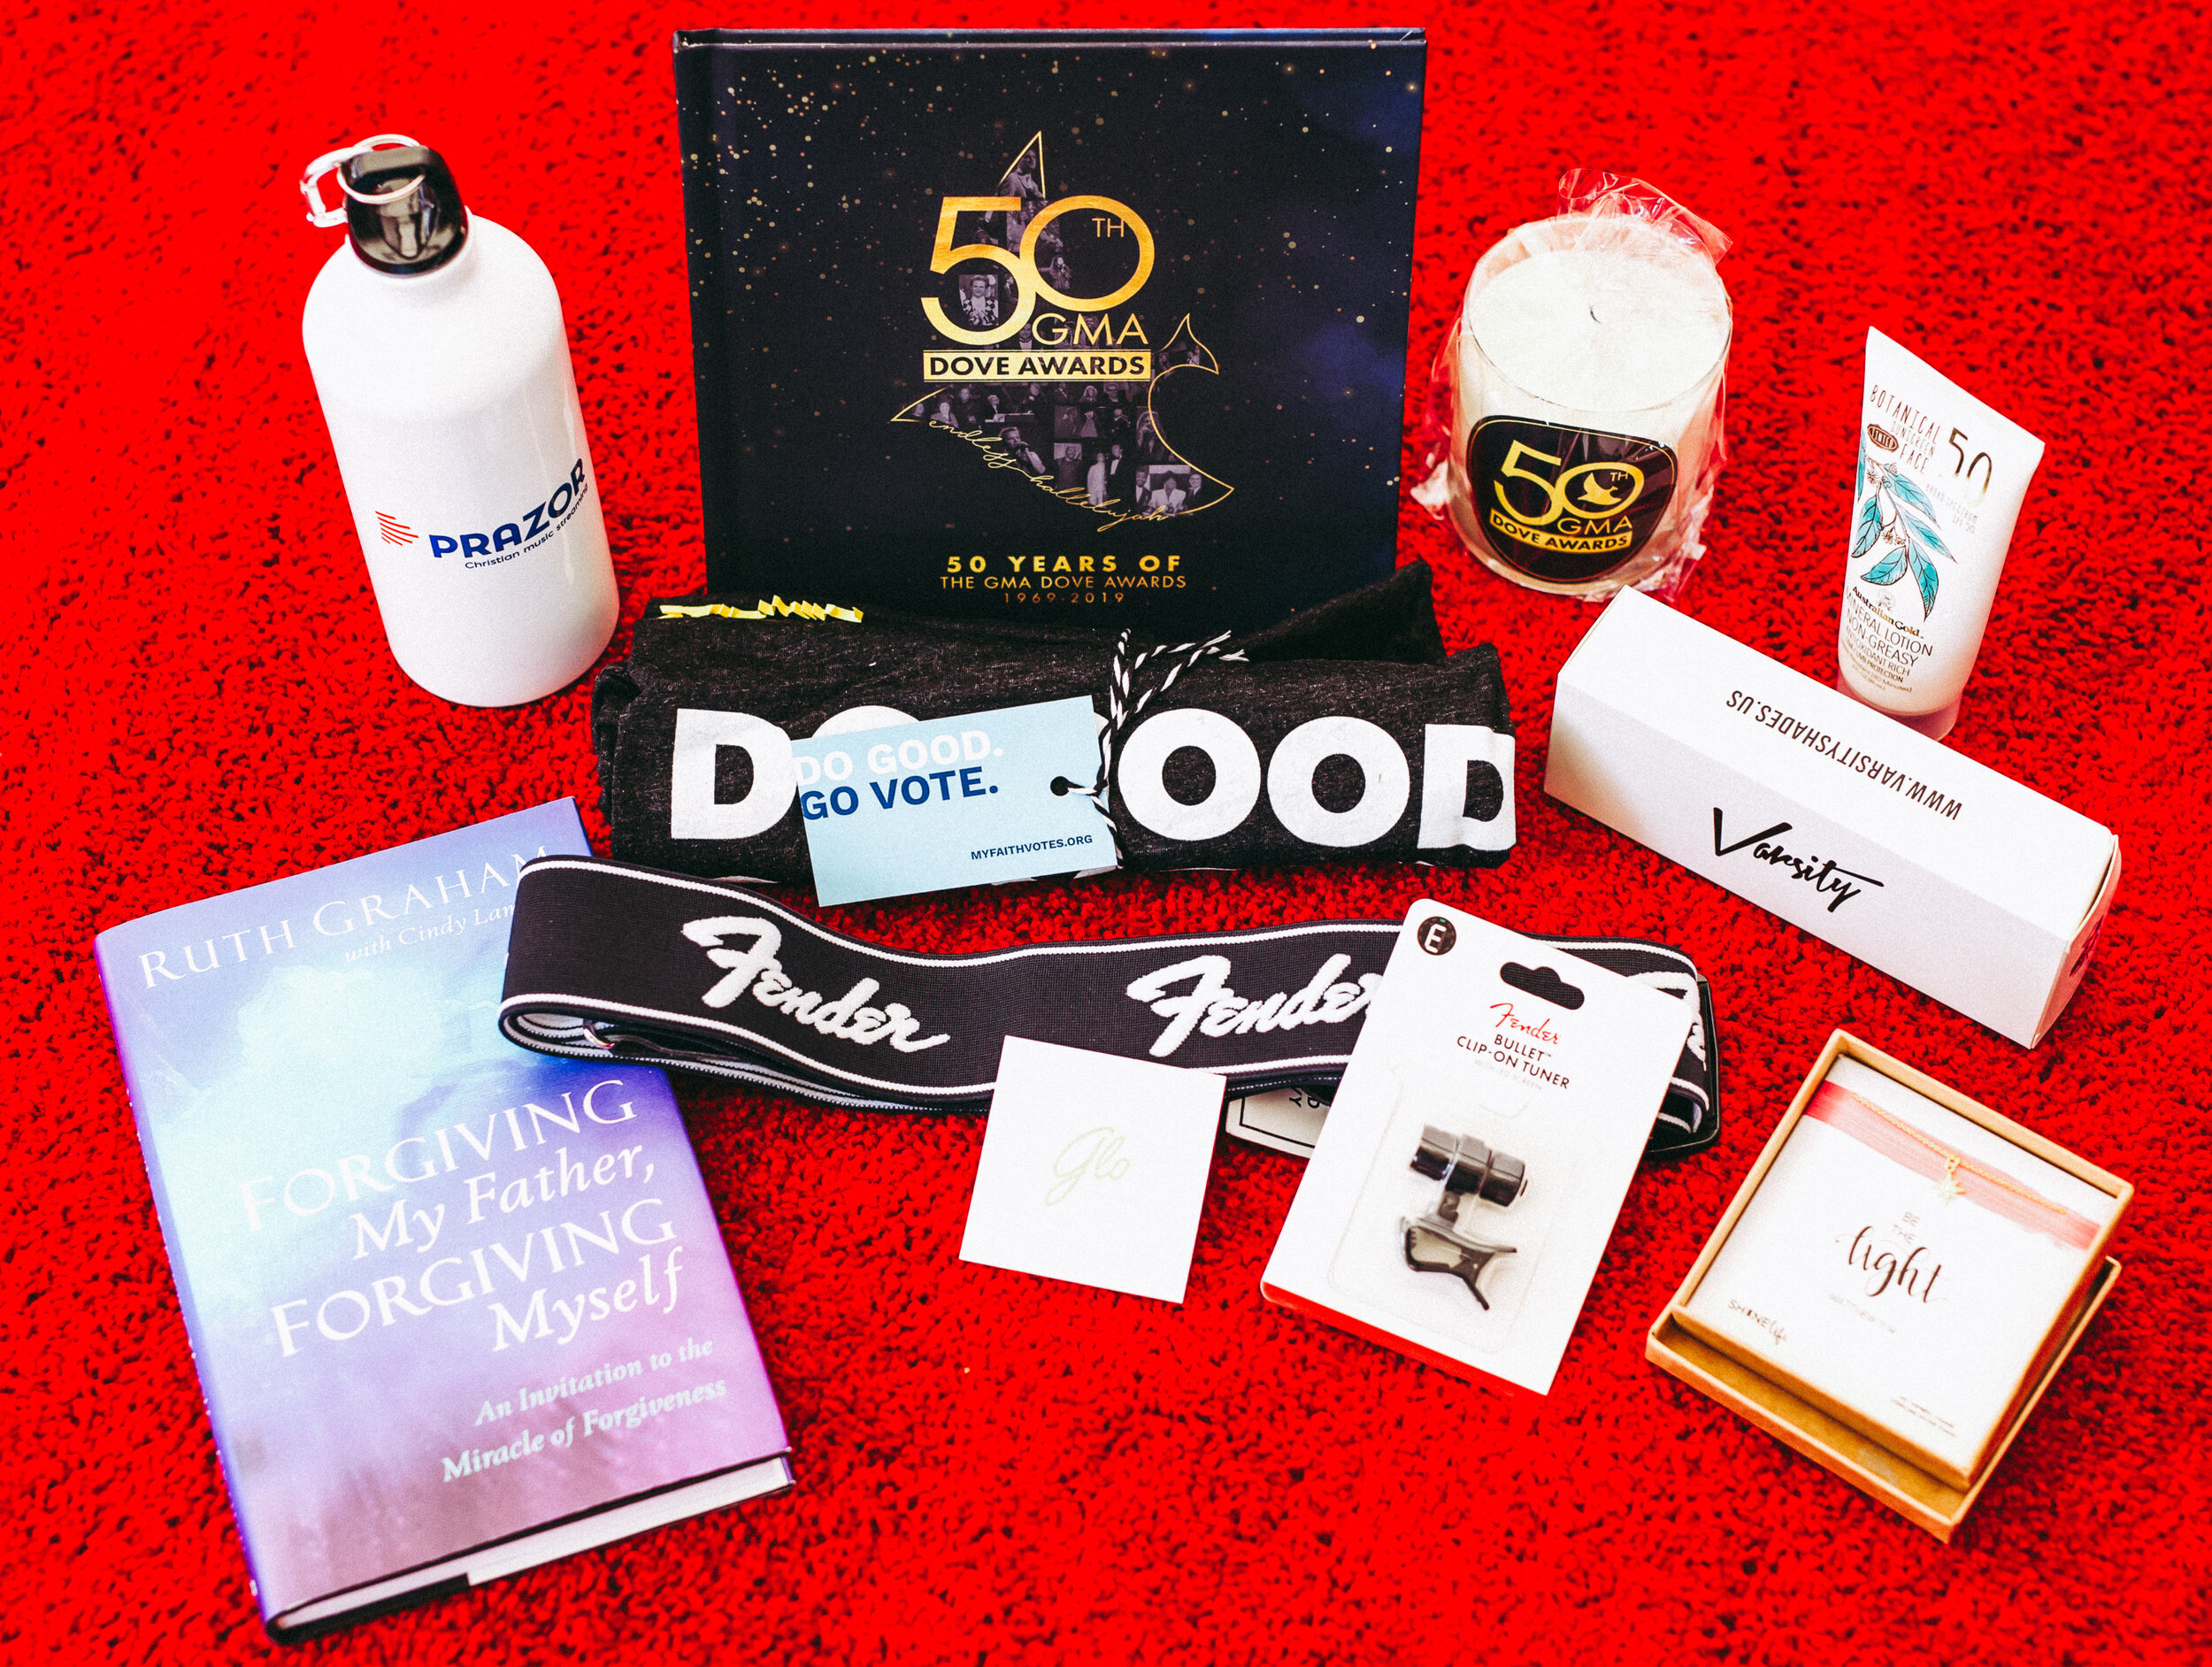 This is what was inside the Gift Boxes for all of the performers of the Dove Awards!